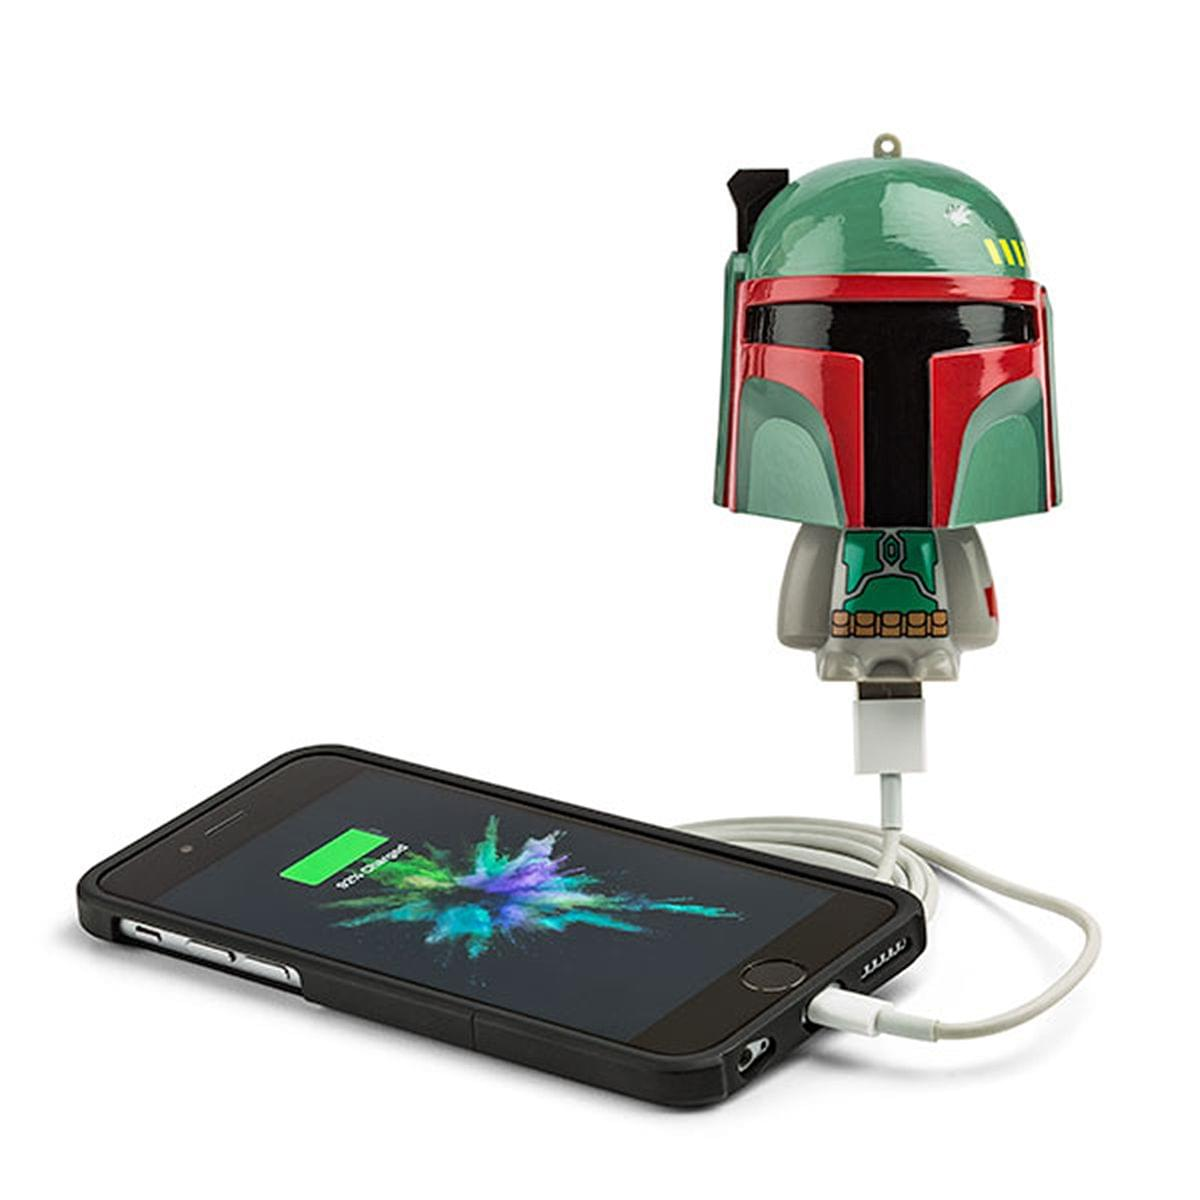 Star Wars Mighty Minis Micro Boost USB Charger: Boba Fett